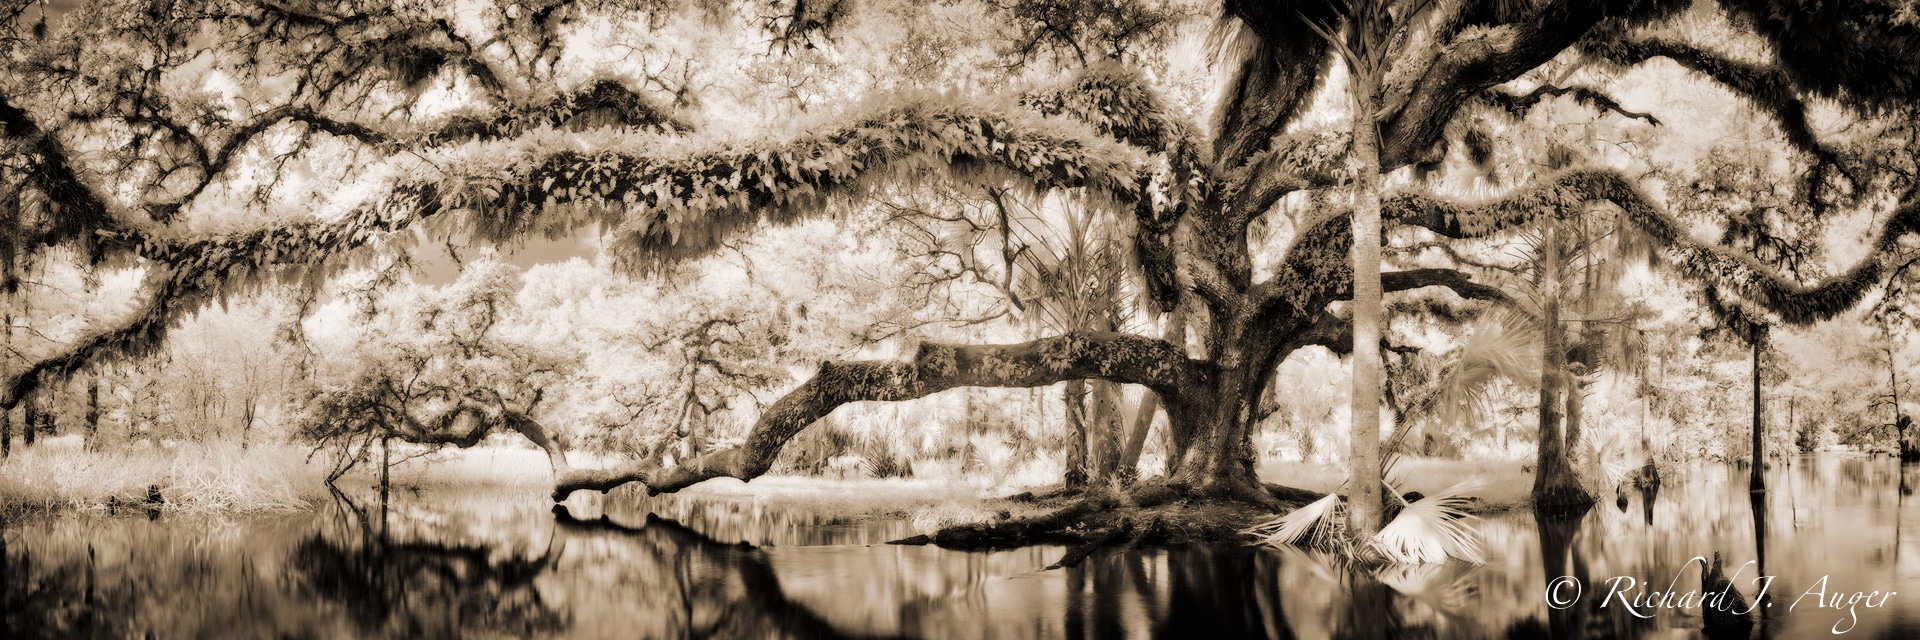 Fisheating Creek, Florida, Oak Tree, Water, Swamp, haunted, sepia, monochrome, landscape, photographer, sepia tone, black and white, panorama